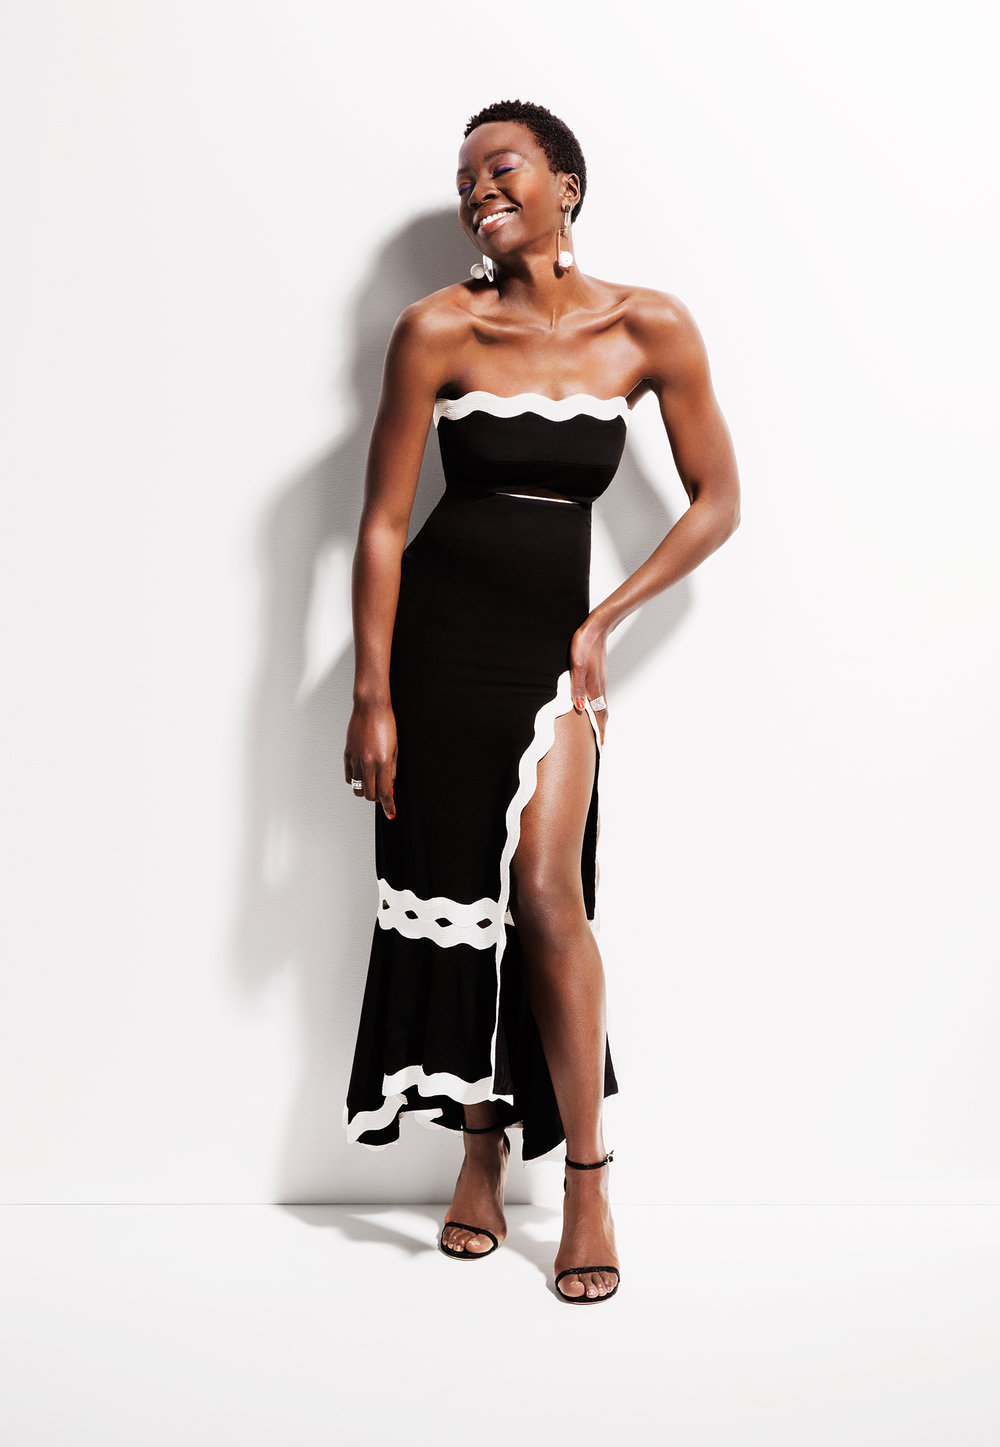 Danai_02_Shot_Blackdress_JonathanSimkhai_274_V2.jpg